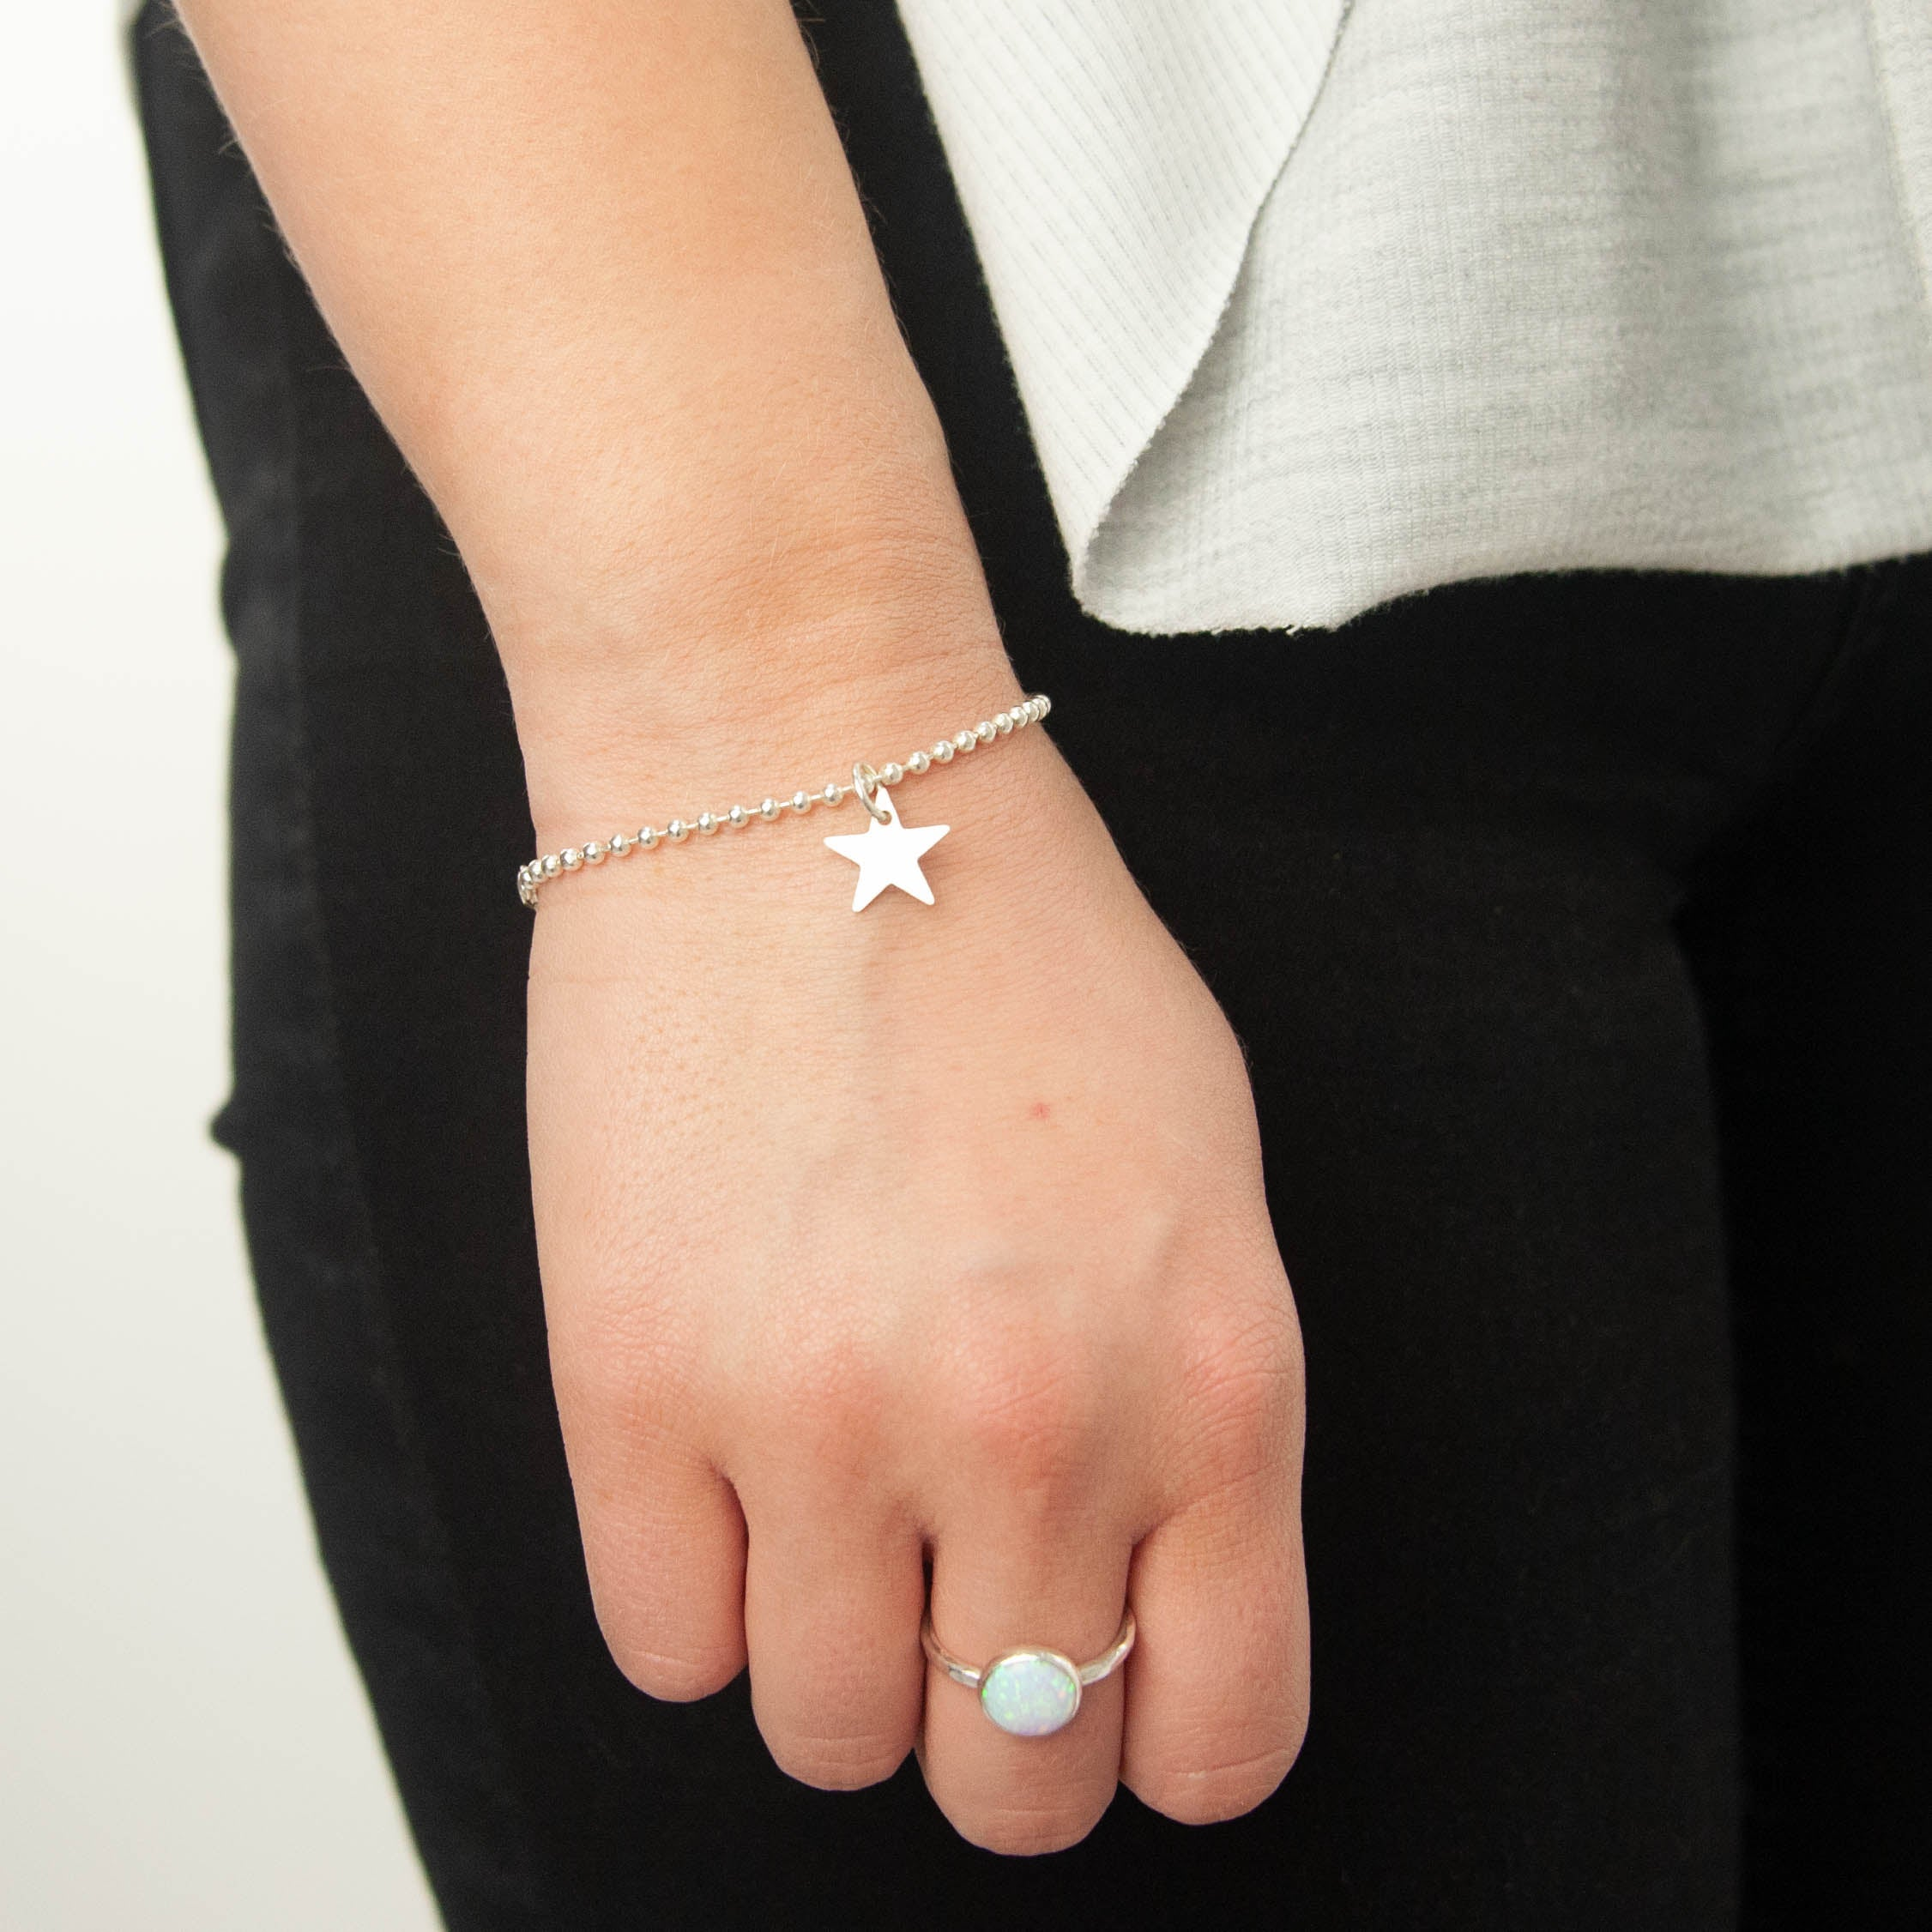 Sterling Silver Ball Bracelet with Small Personalised Charm